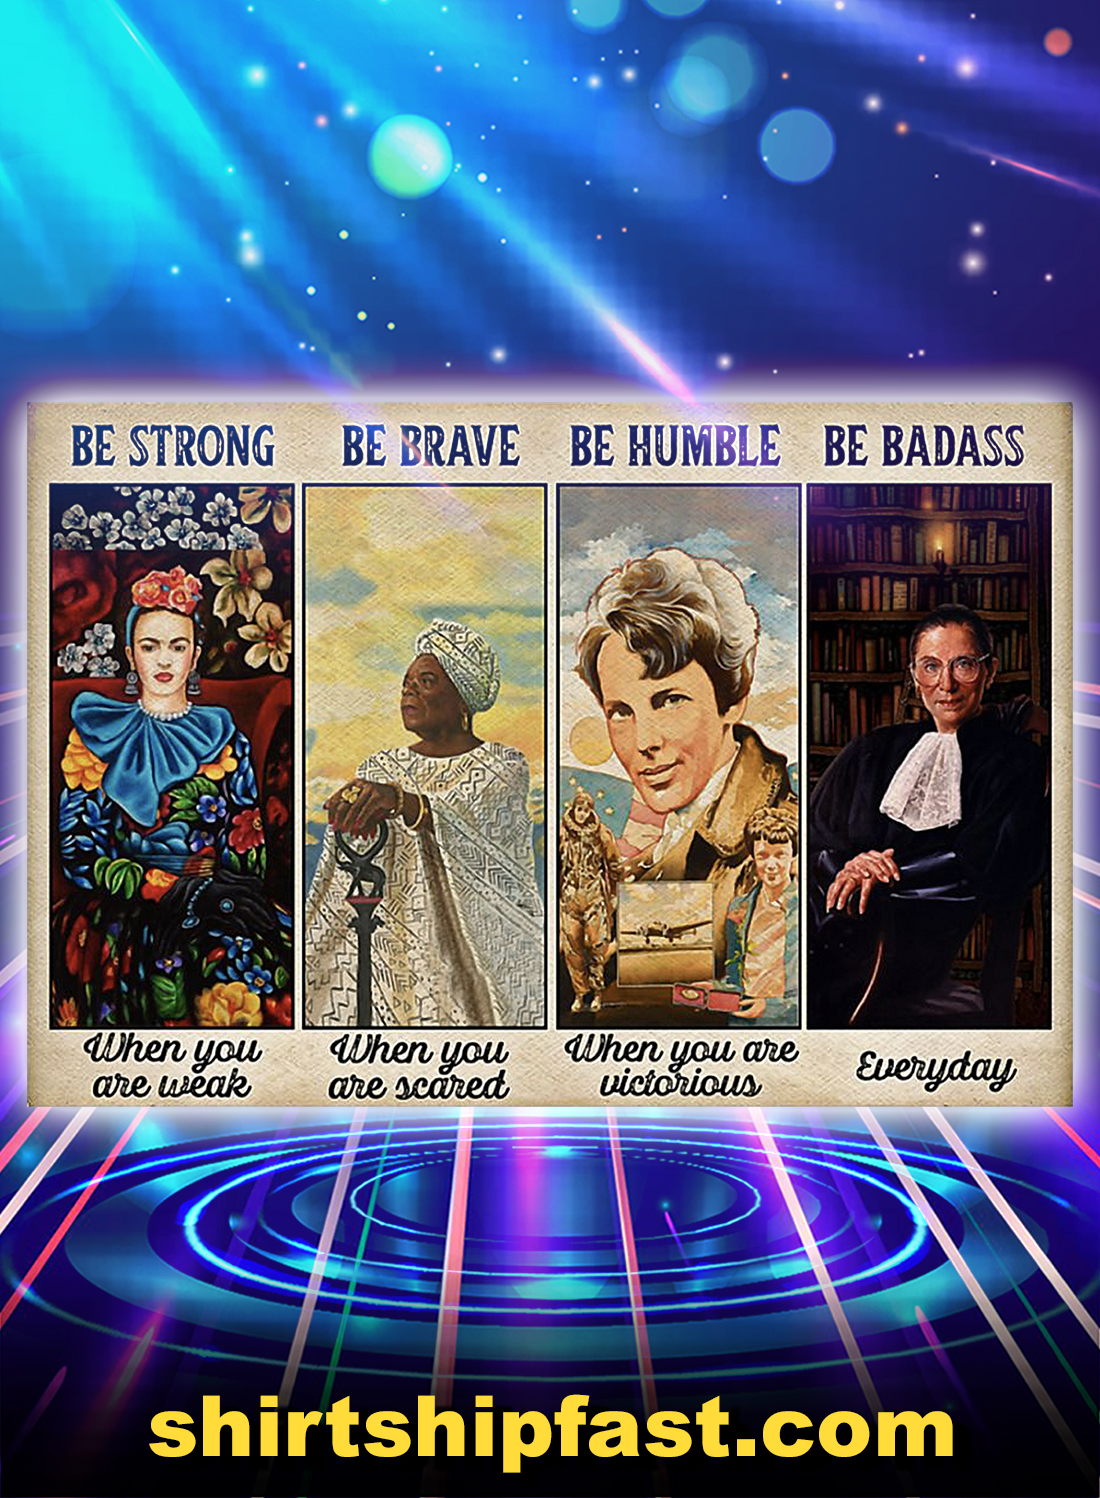 Feminist Frida Kahlo RBG be strong be brave be humble be badass poster - A4